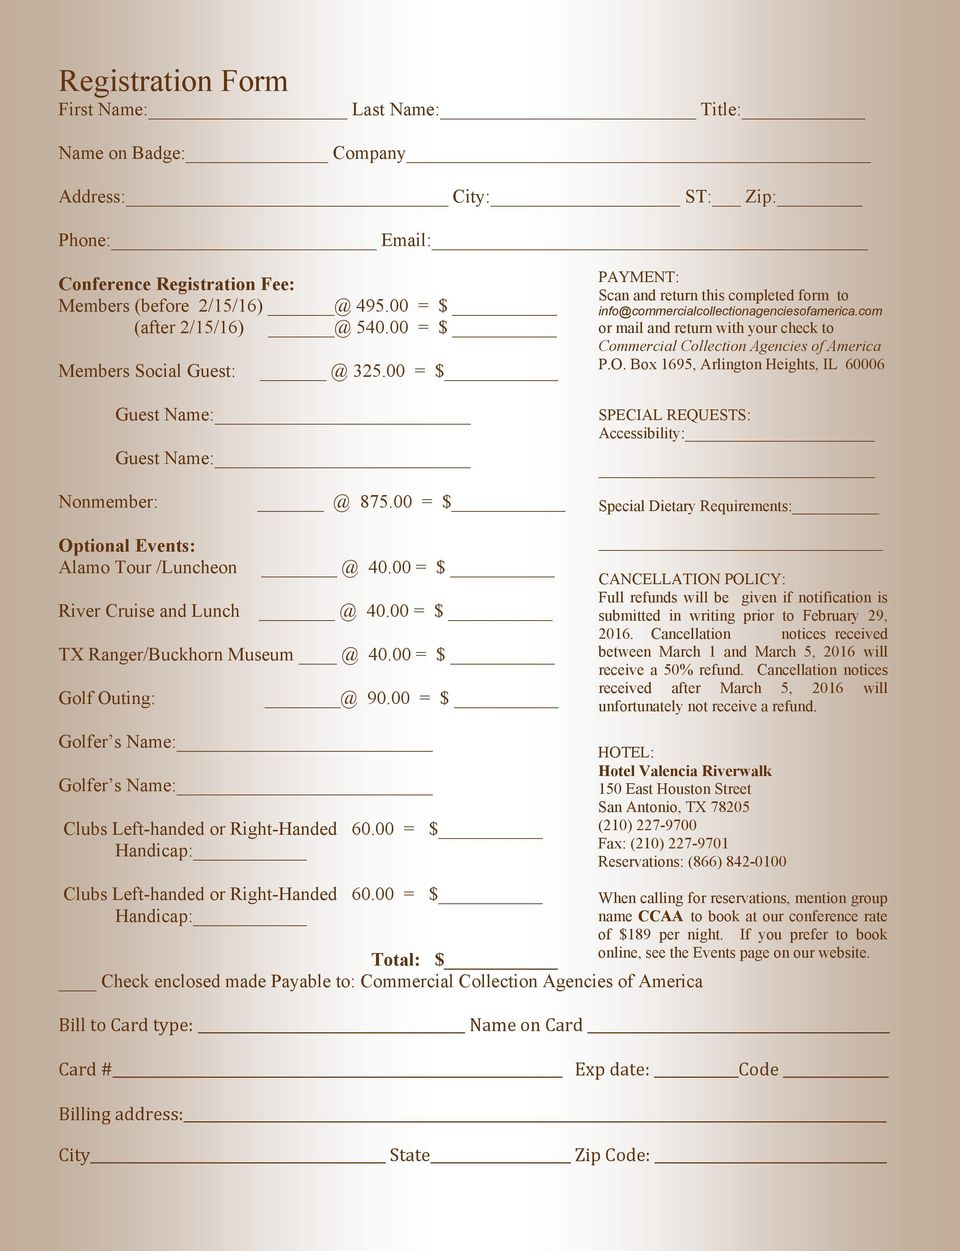 00 = $ TX Ranger/Buckhorn Museum @ 40.00 = $ Golf Outing: @ 90.00 = $ PAYMENT: Scan and return this completed form to info@commercialcollectionagenciesofamerica.